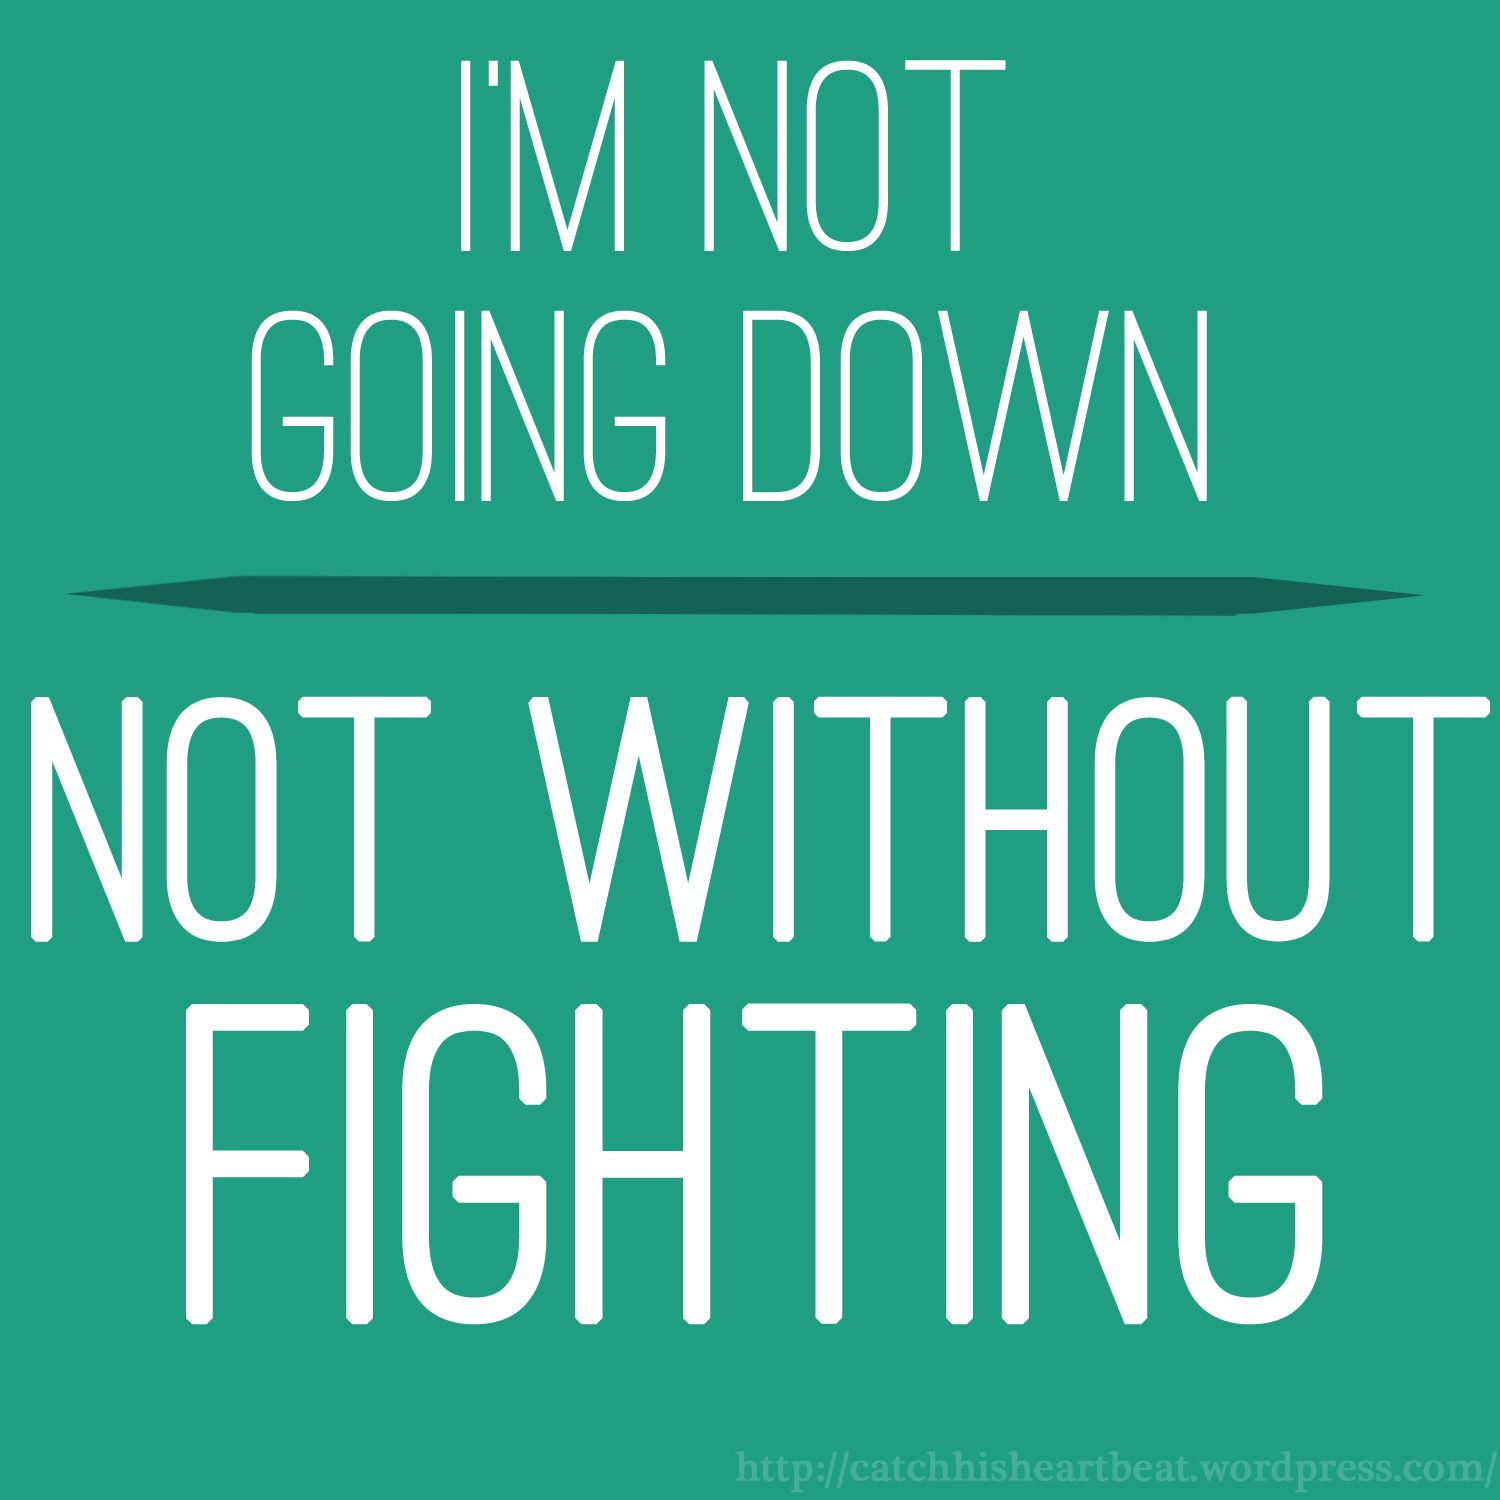 Quotes About Fighting: I'm Not Going Down, Not Without Fighting Quote.